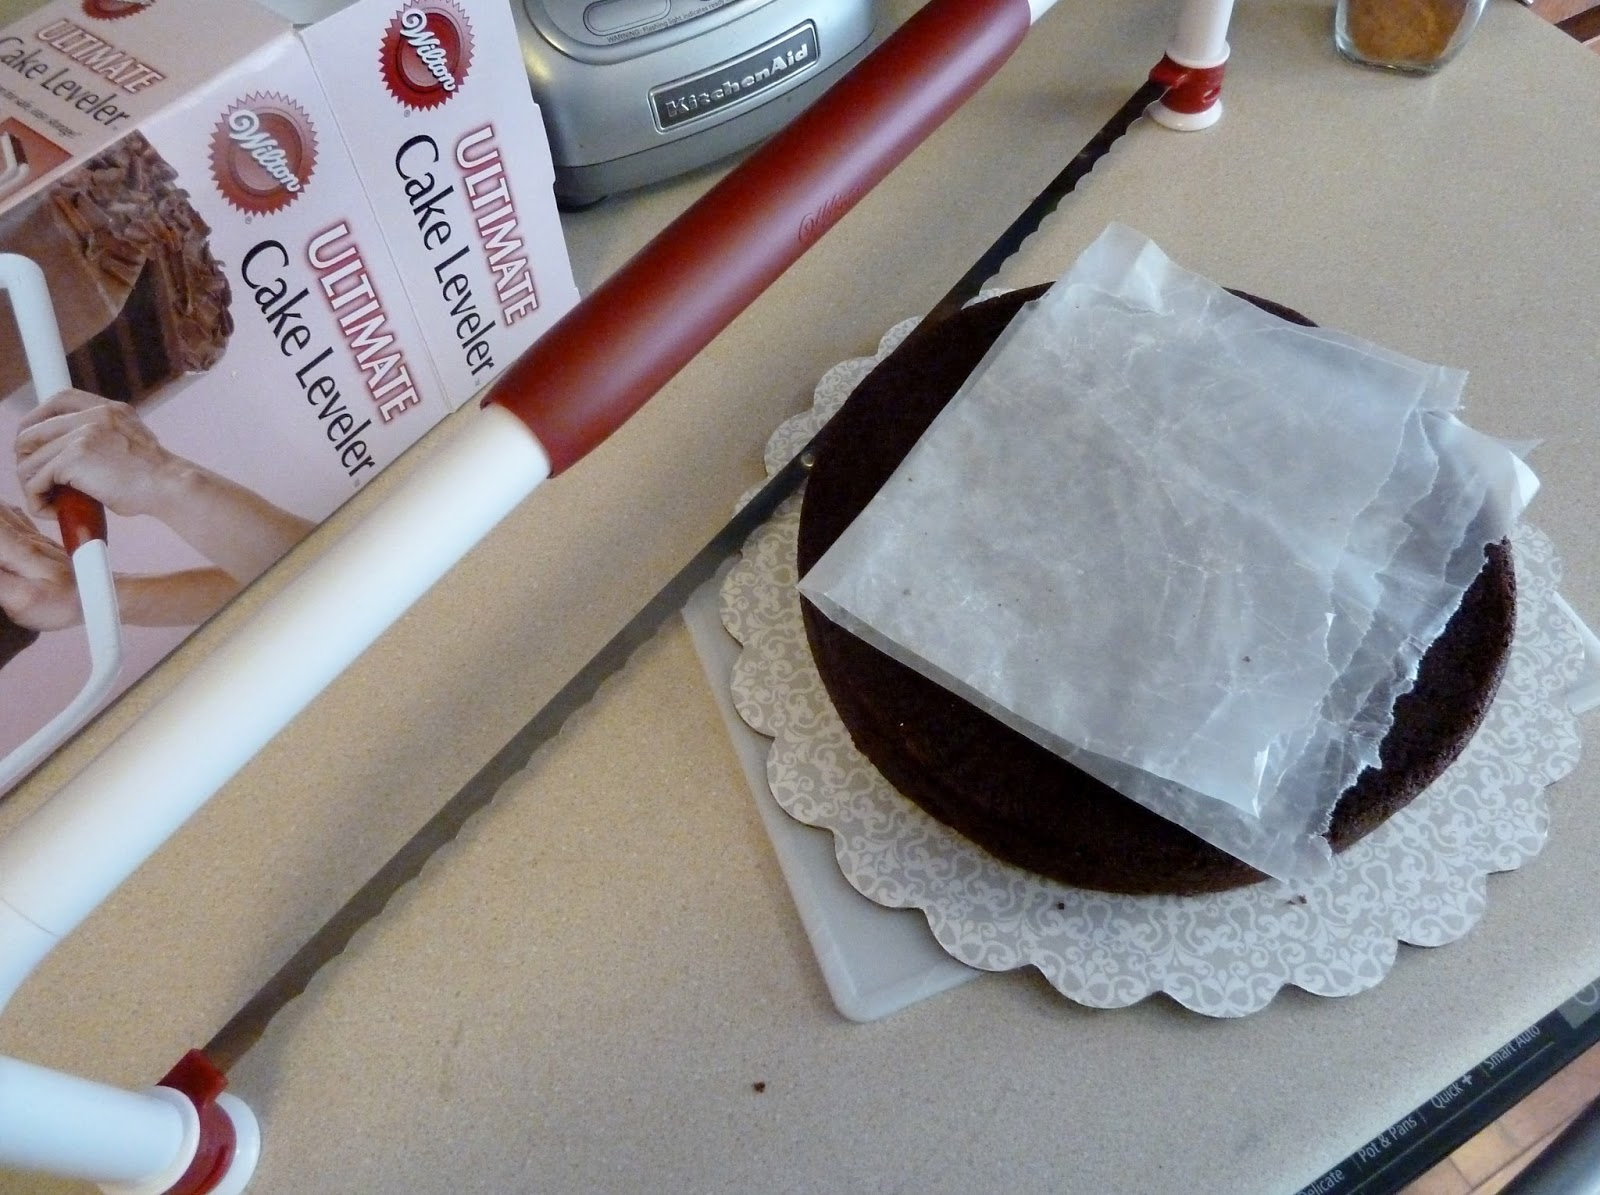 ... Apron....Will Bake: Mile-High Chocolate Cake with Vanilla Buttercream